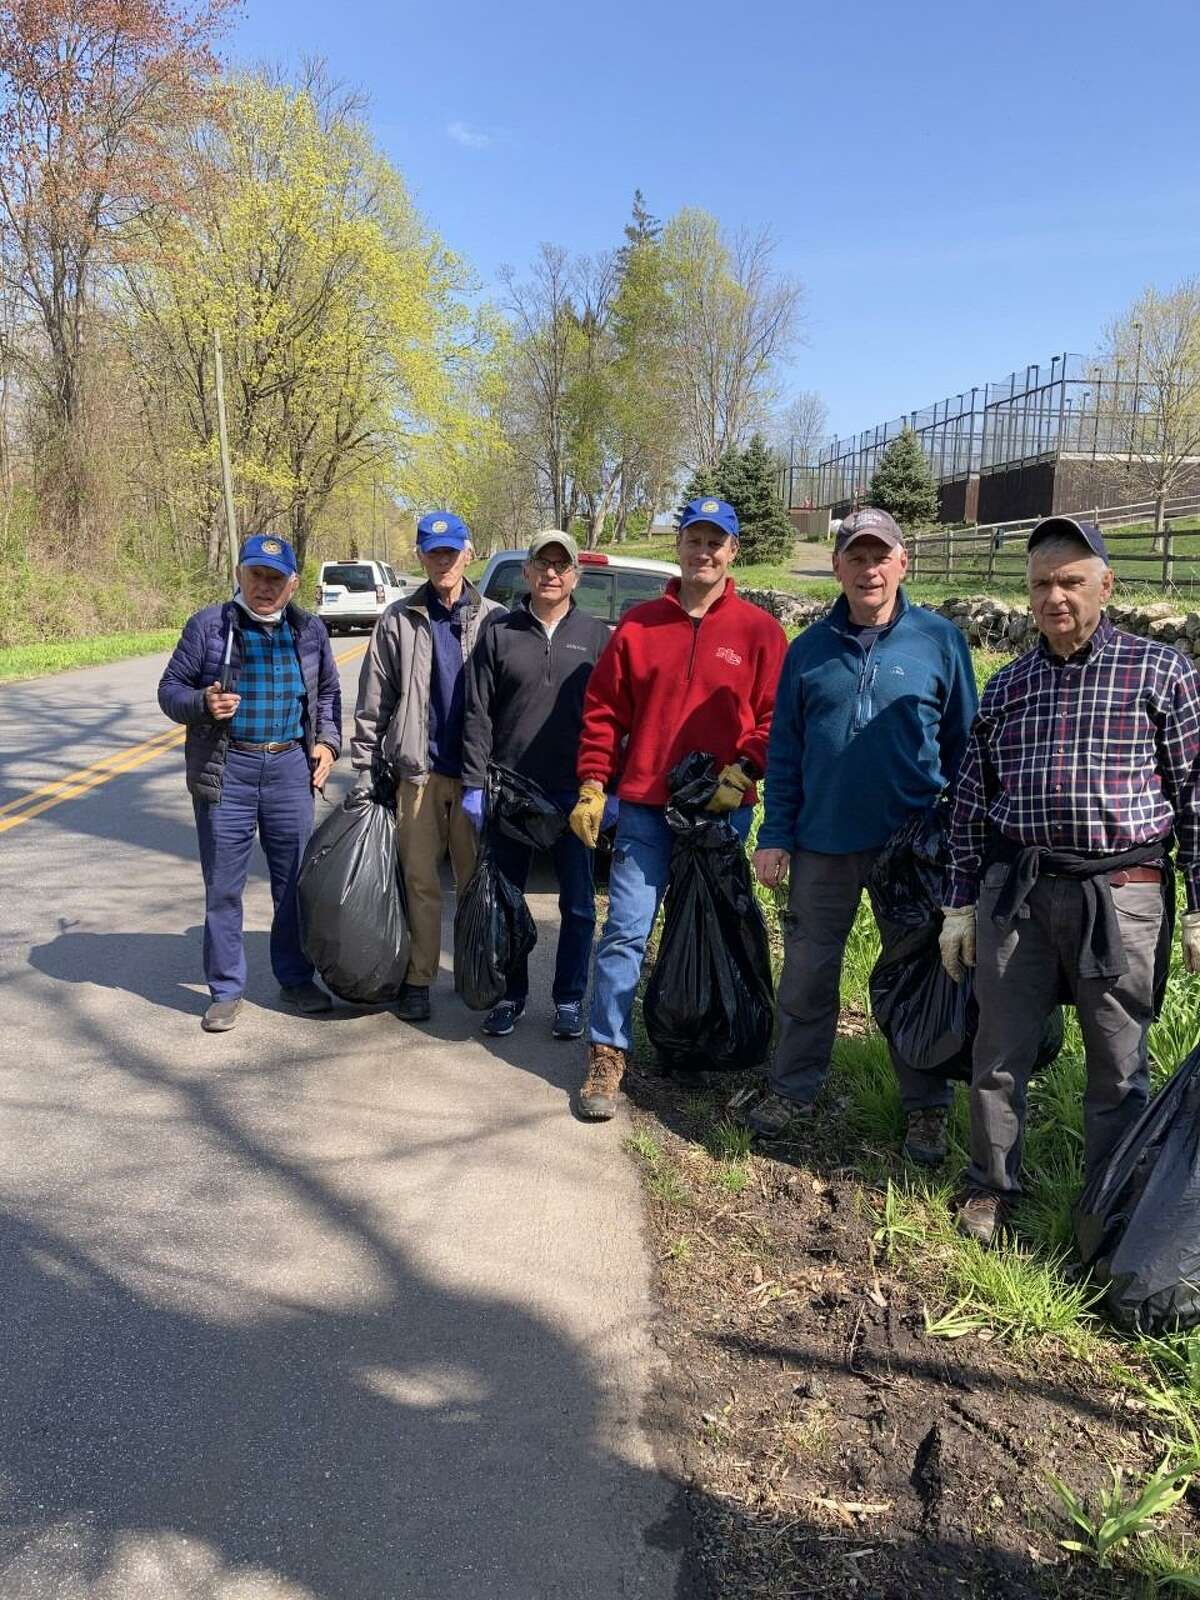 Members of the New Canaan Exchange Club, and families worked to pick up and dispose of trash on Lapham Road on the west side of Waveny Park this past Saturday, April 24. A pickup truck full of refuse was removed from the roadside. Exchange Club members in this photo are: Gene Milosh, Bob Williams, Charles Taben, Steve Root, Mike Mimnaugh and Mike Gregorio. Luke Tashjian organized this year's, 2021, effort, and provided coffee, and donuts for the team.